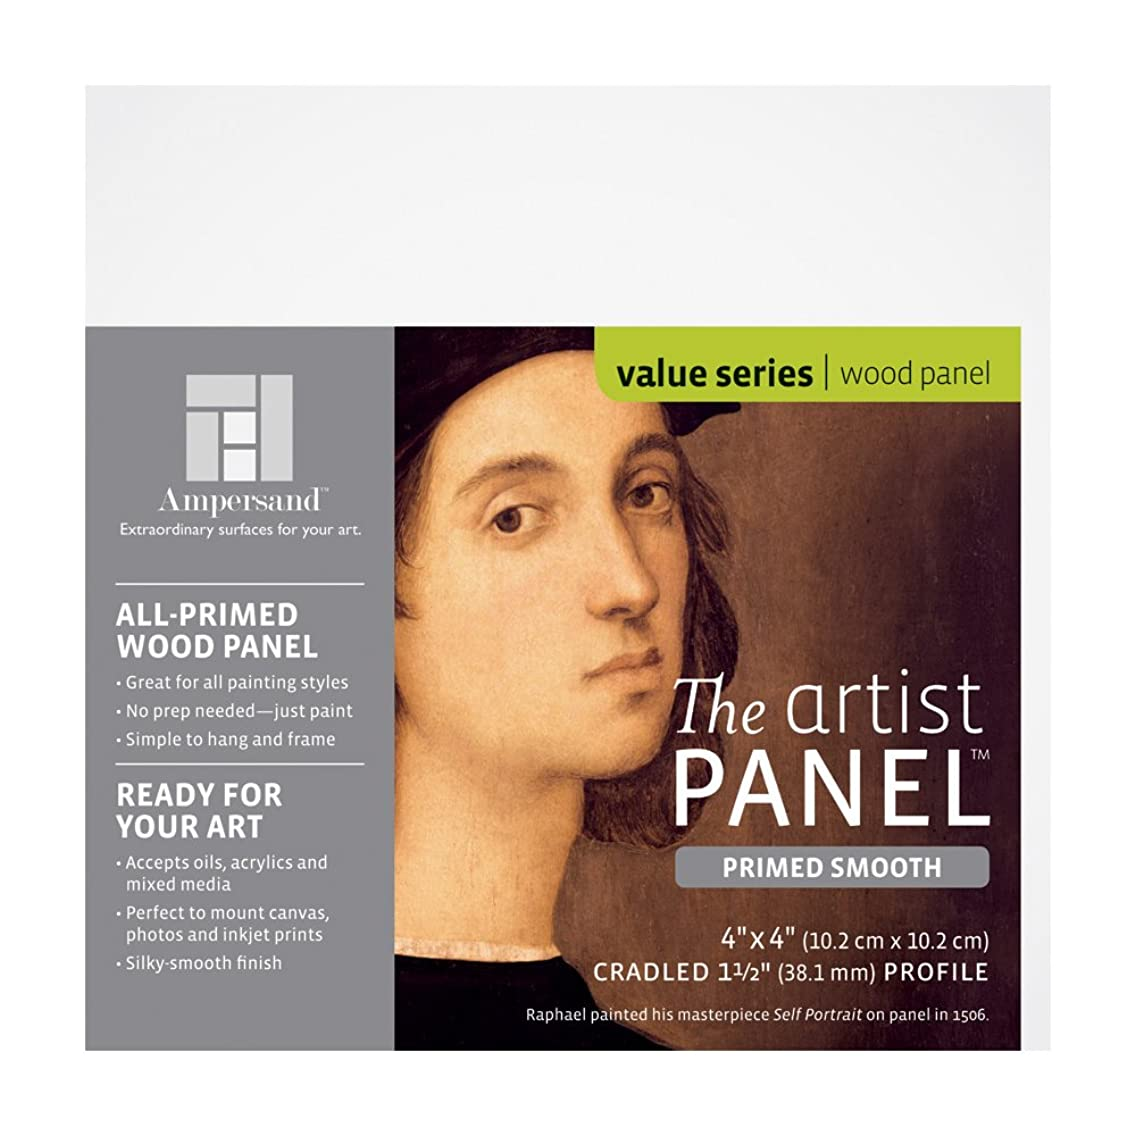 Value Wood Art Painting Panel Primed Smooth by Ampersand 1-1/2